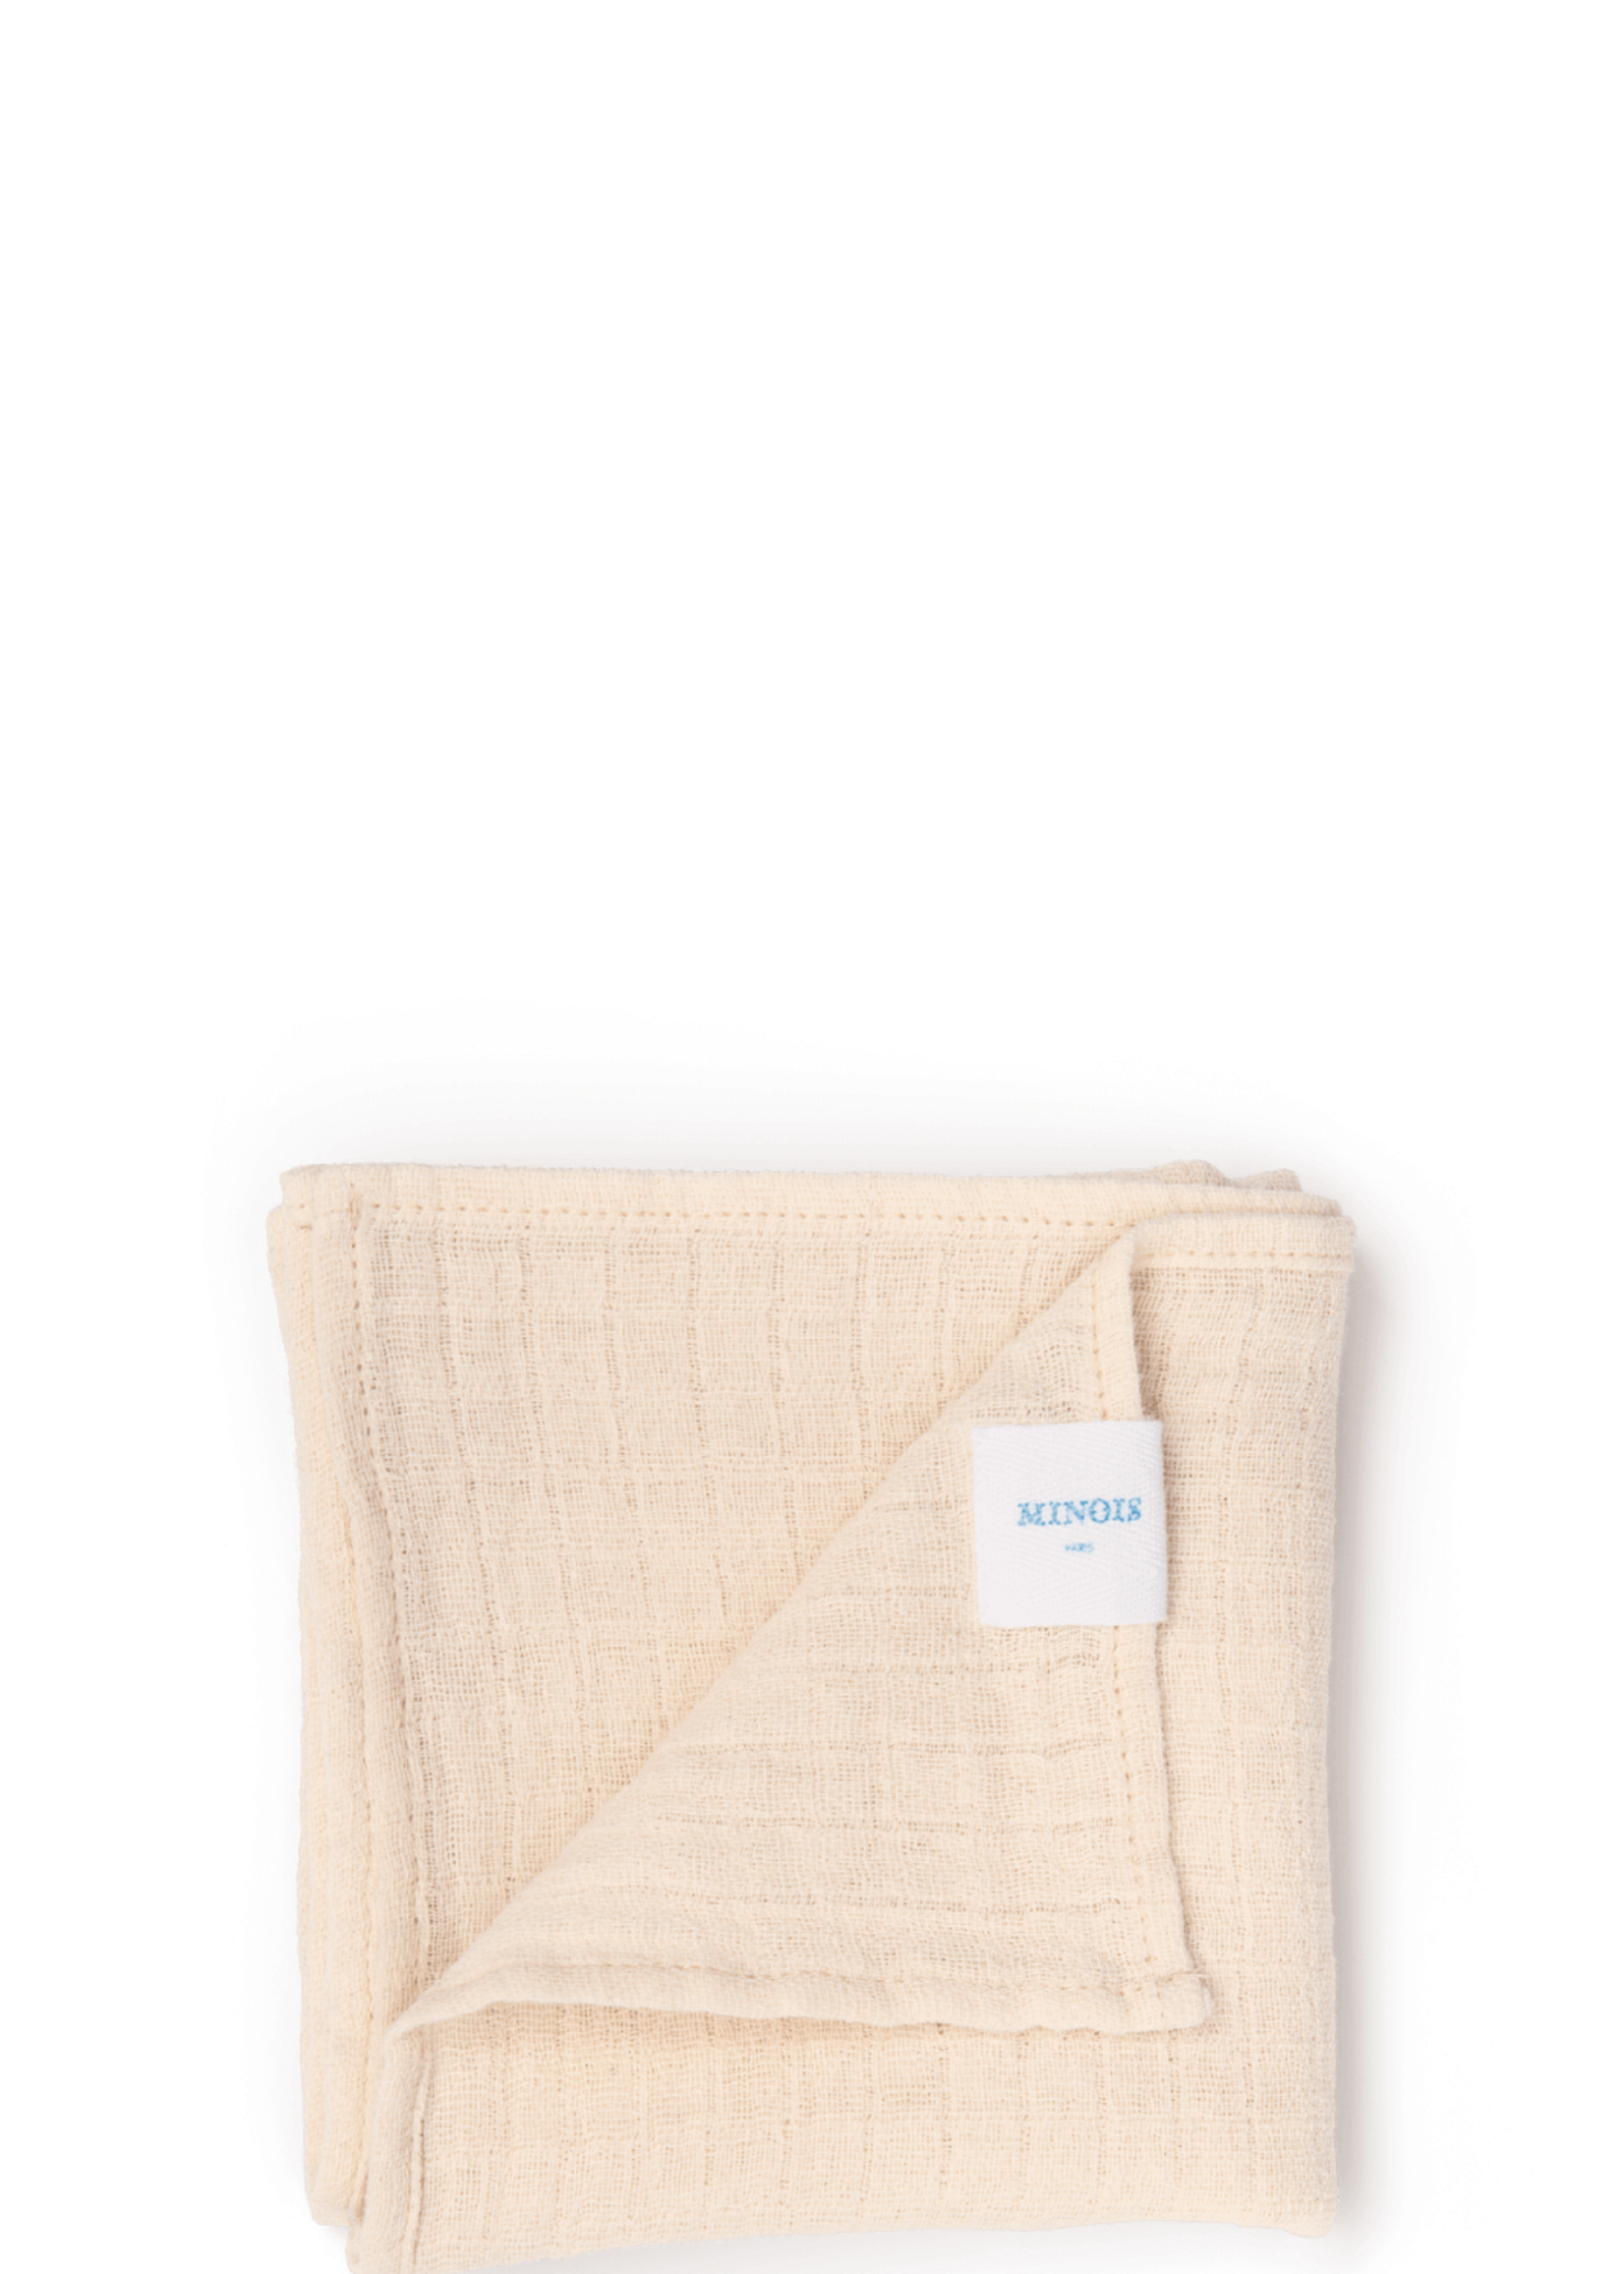 Minois Minois Cotton swaddle for babies